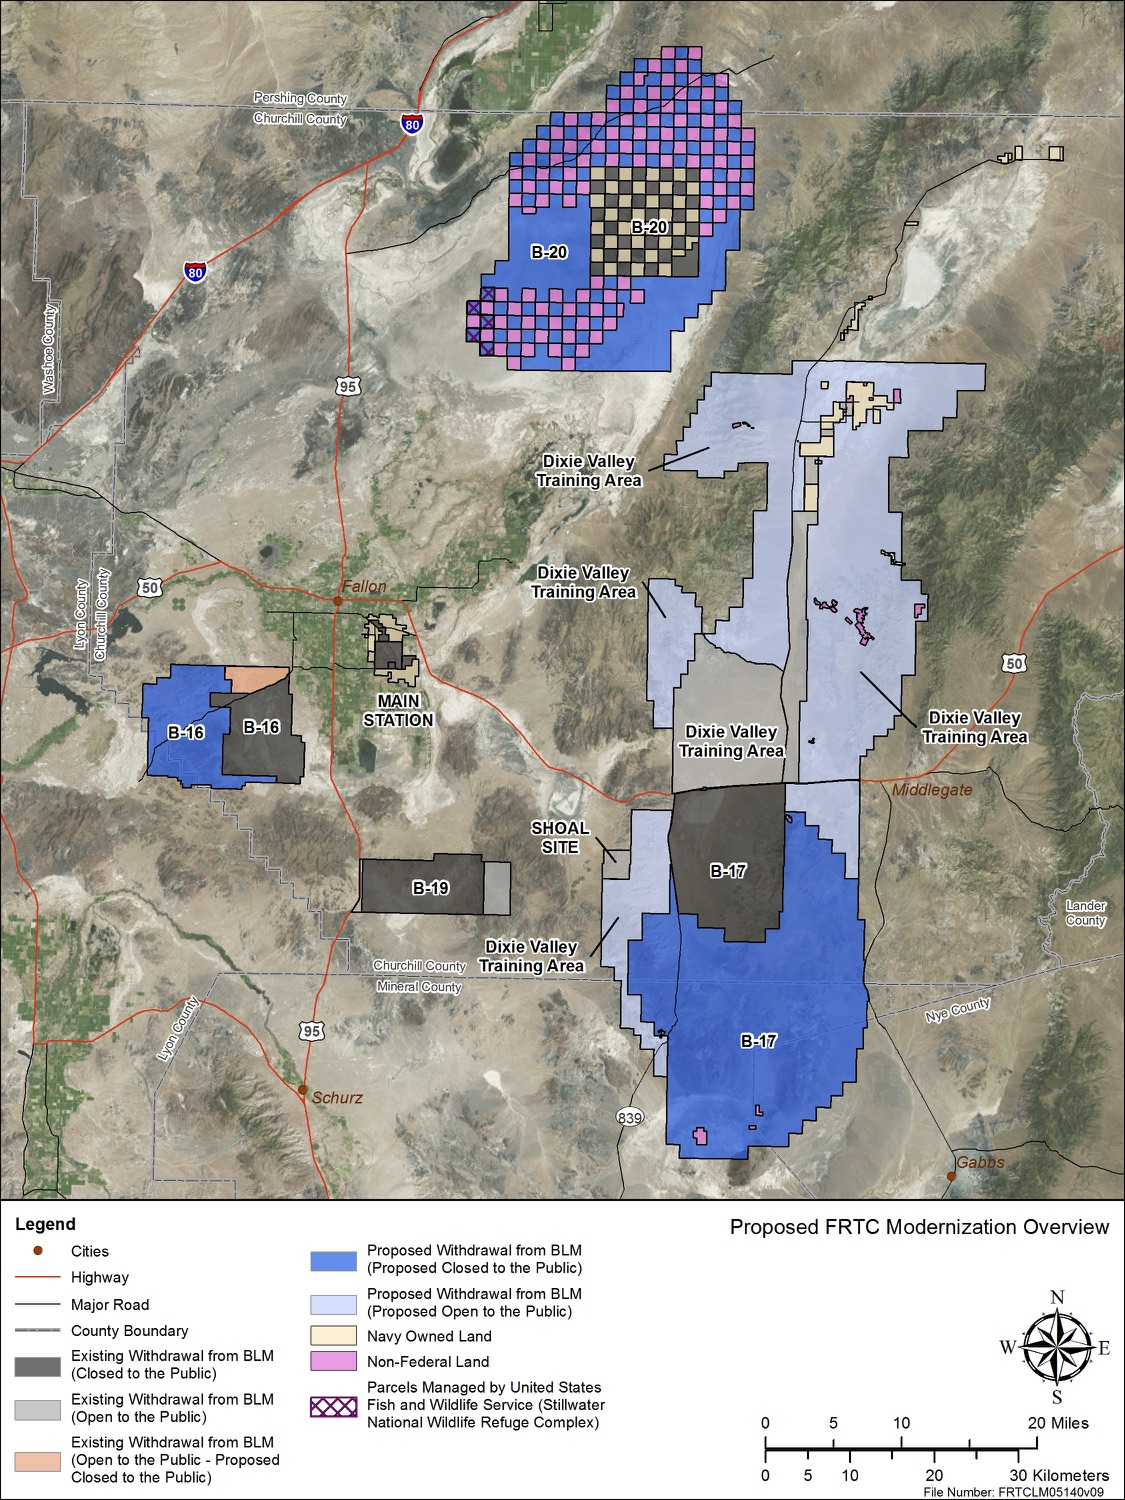 FRTCLM05140v09_NAS_Fallon_Withdrawal_Overview_Map